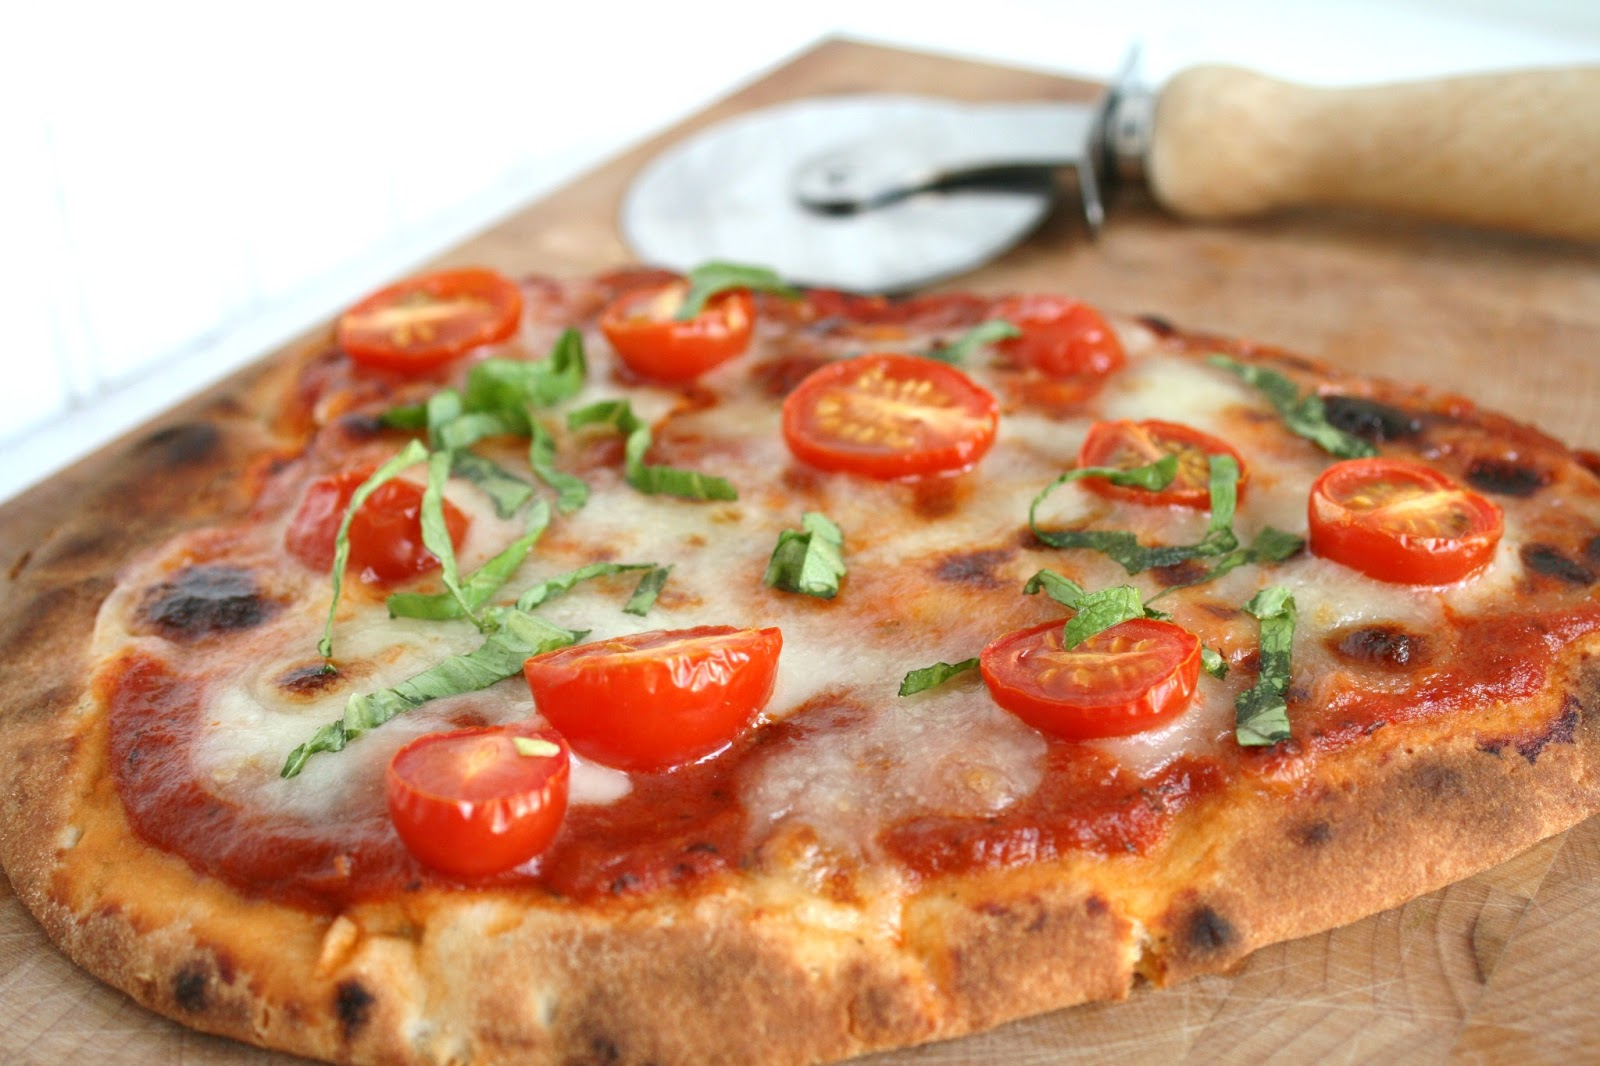 I Thee Cook: Garlic Naan Pizza With Roasted Tomato Sauce